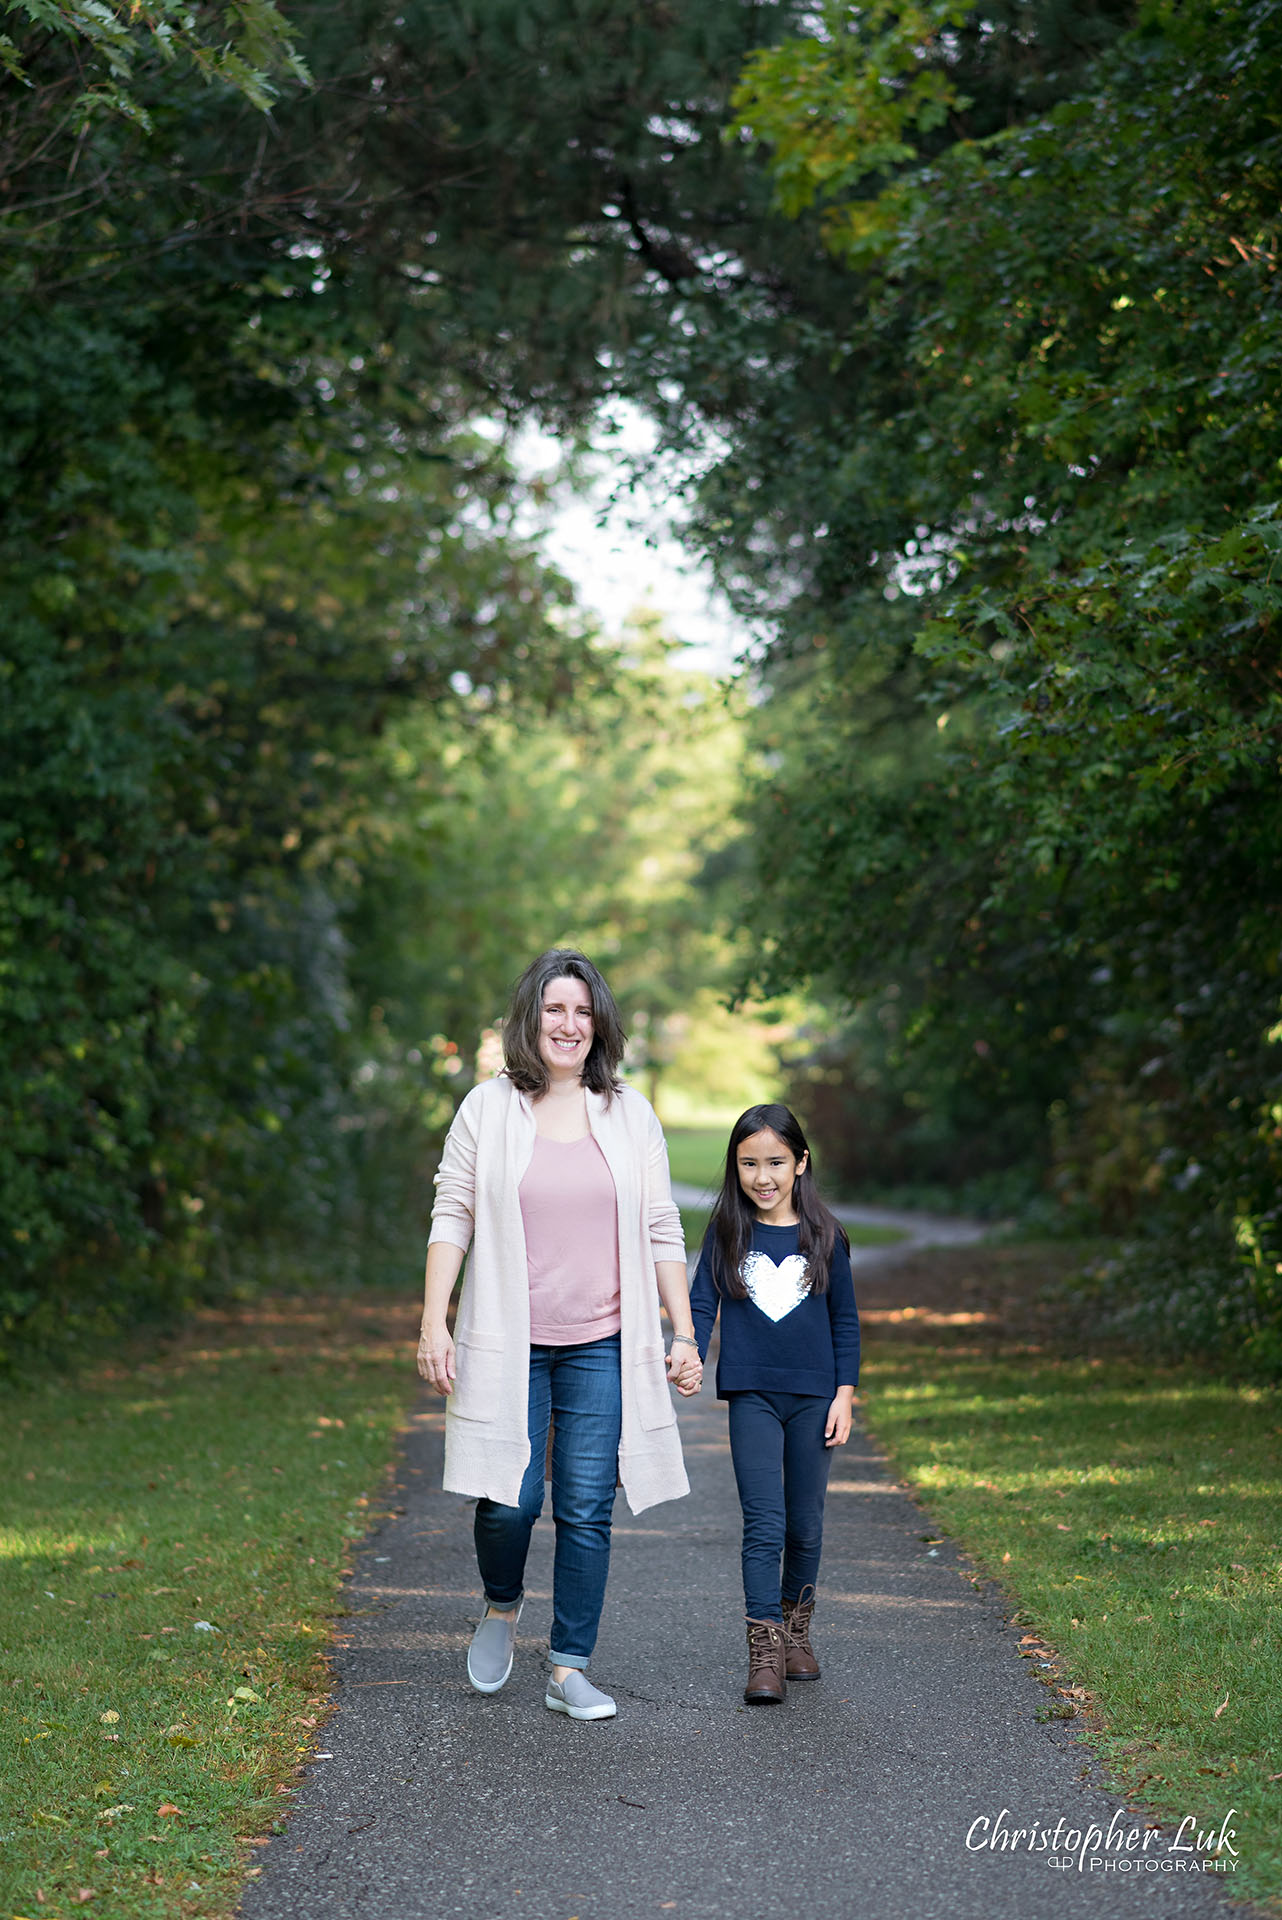 Christopher Luk Family Photographer Toronto Markham Candid Natural Photojournalistic Mother Daughter Walking Together Holding Hands